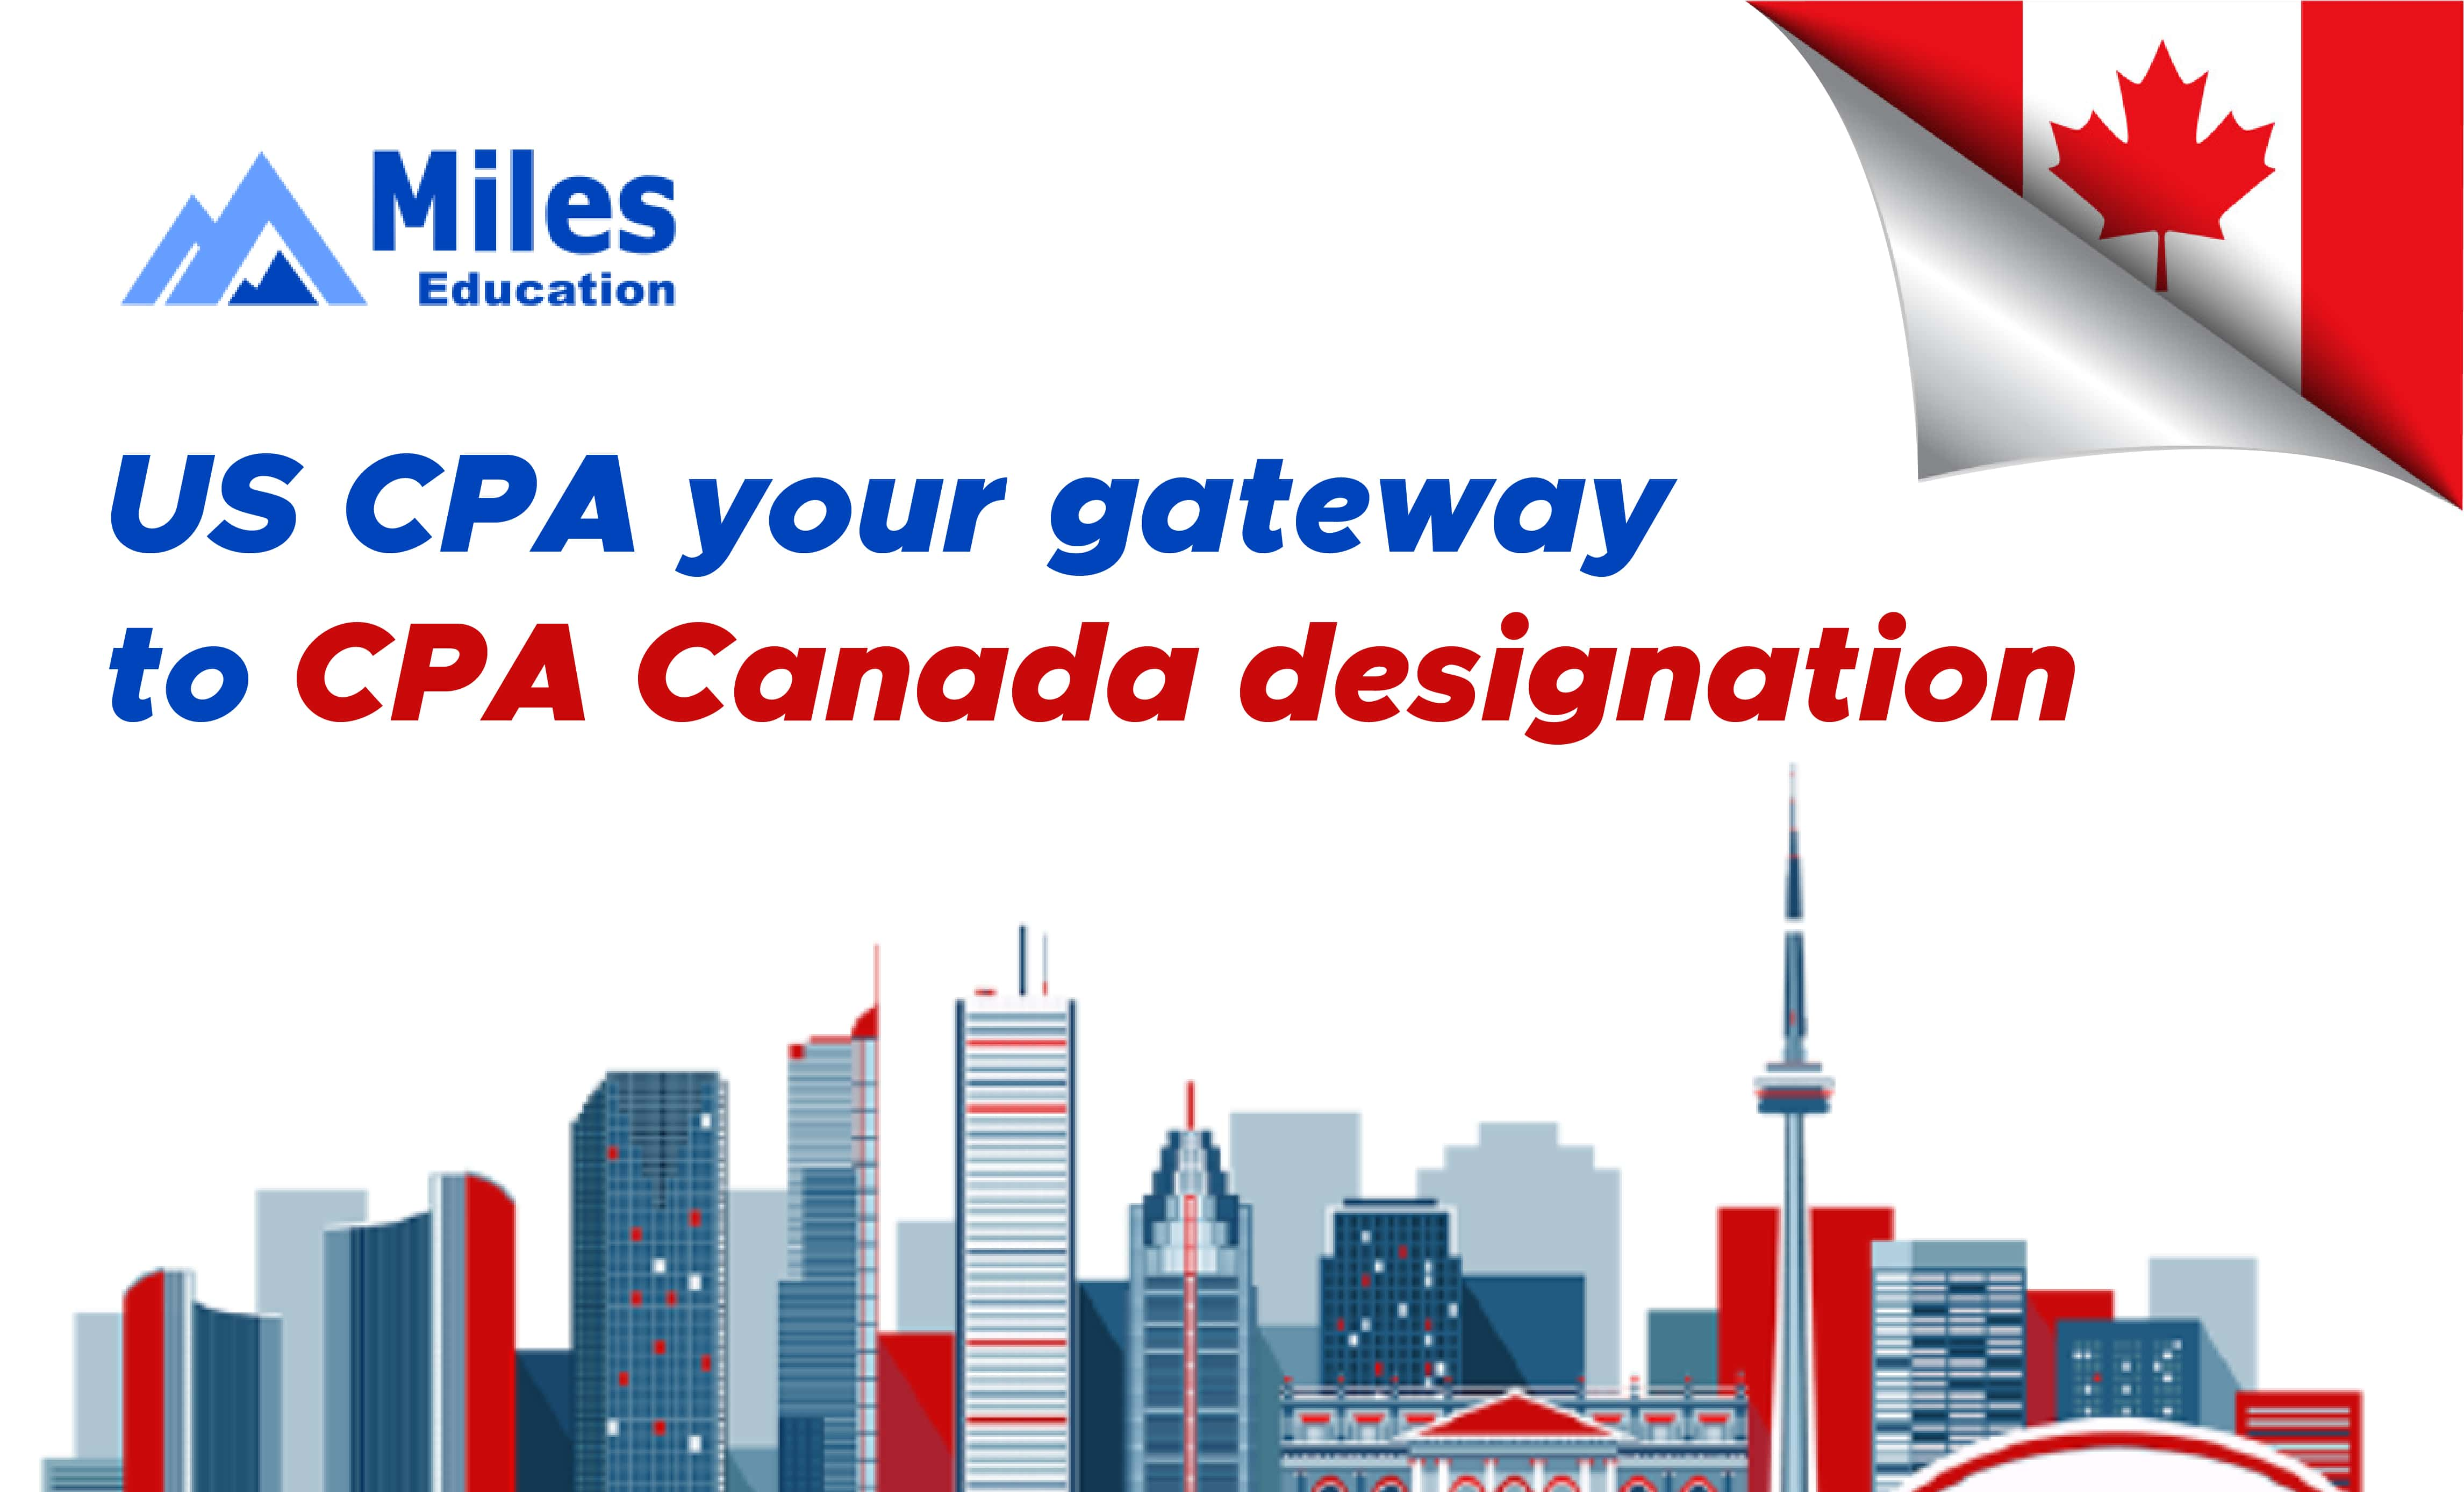 US CPA certification can get you the CPA Canada designation